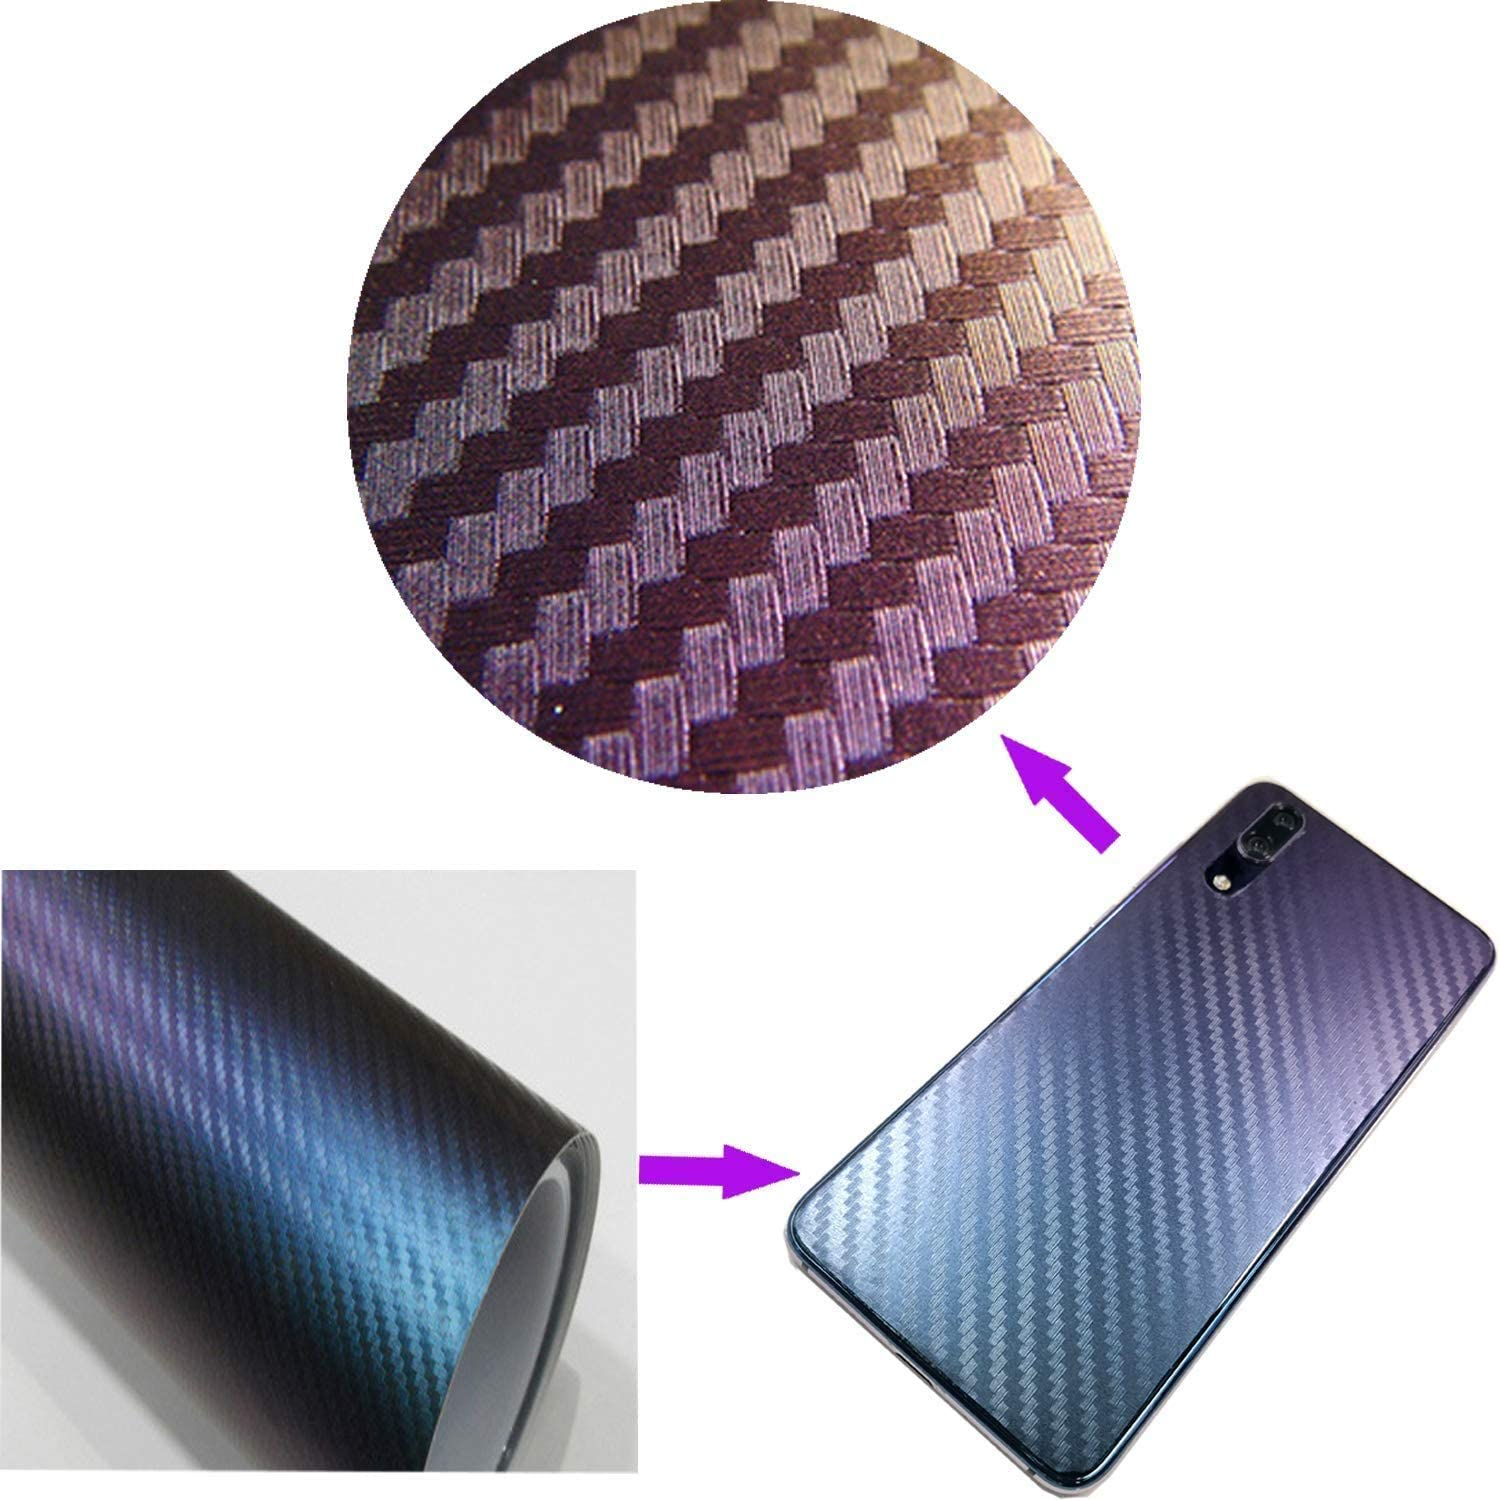 Lypumso Car Stickers 300 x 30 cm Suitable for Appearance /& Interior of Motorcycles Computers Cars Purple 6D Carbon Fibre Vinyl Car Stickers Self-Adhesive Waterproof Bubble-Free